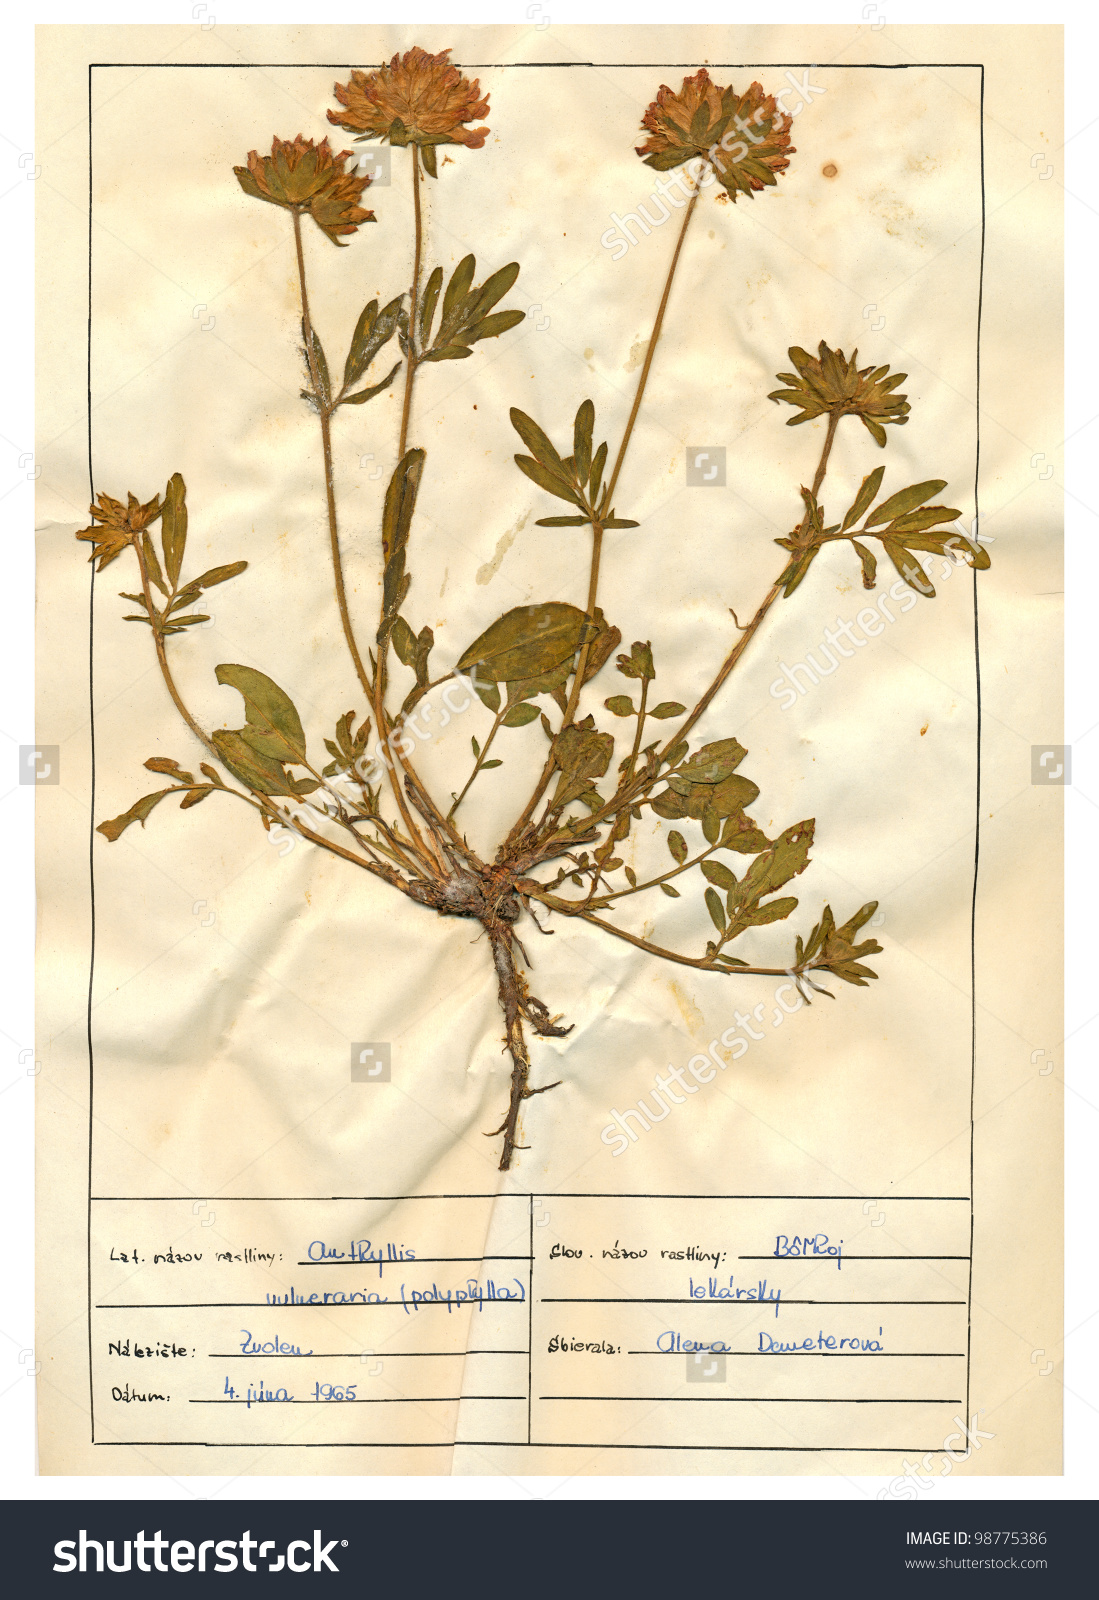 Herbarium Sheet Pressed Plant Anthyllis Vulneraria Stock Photo.